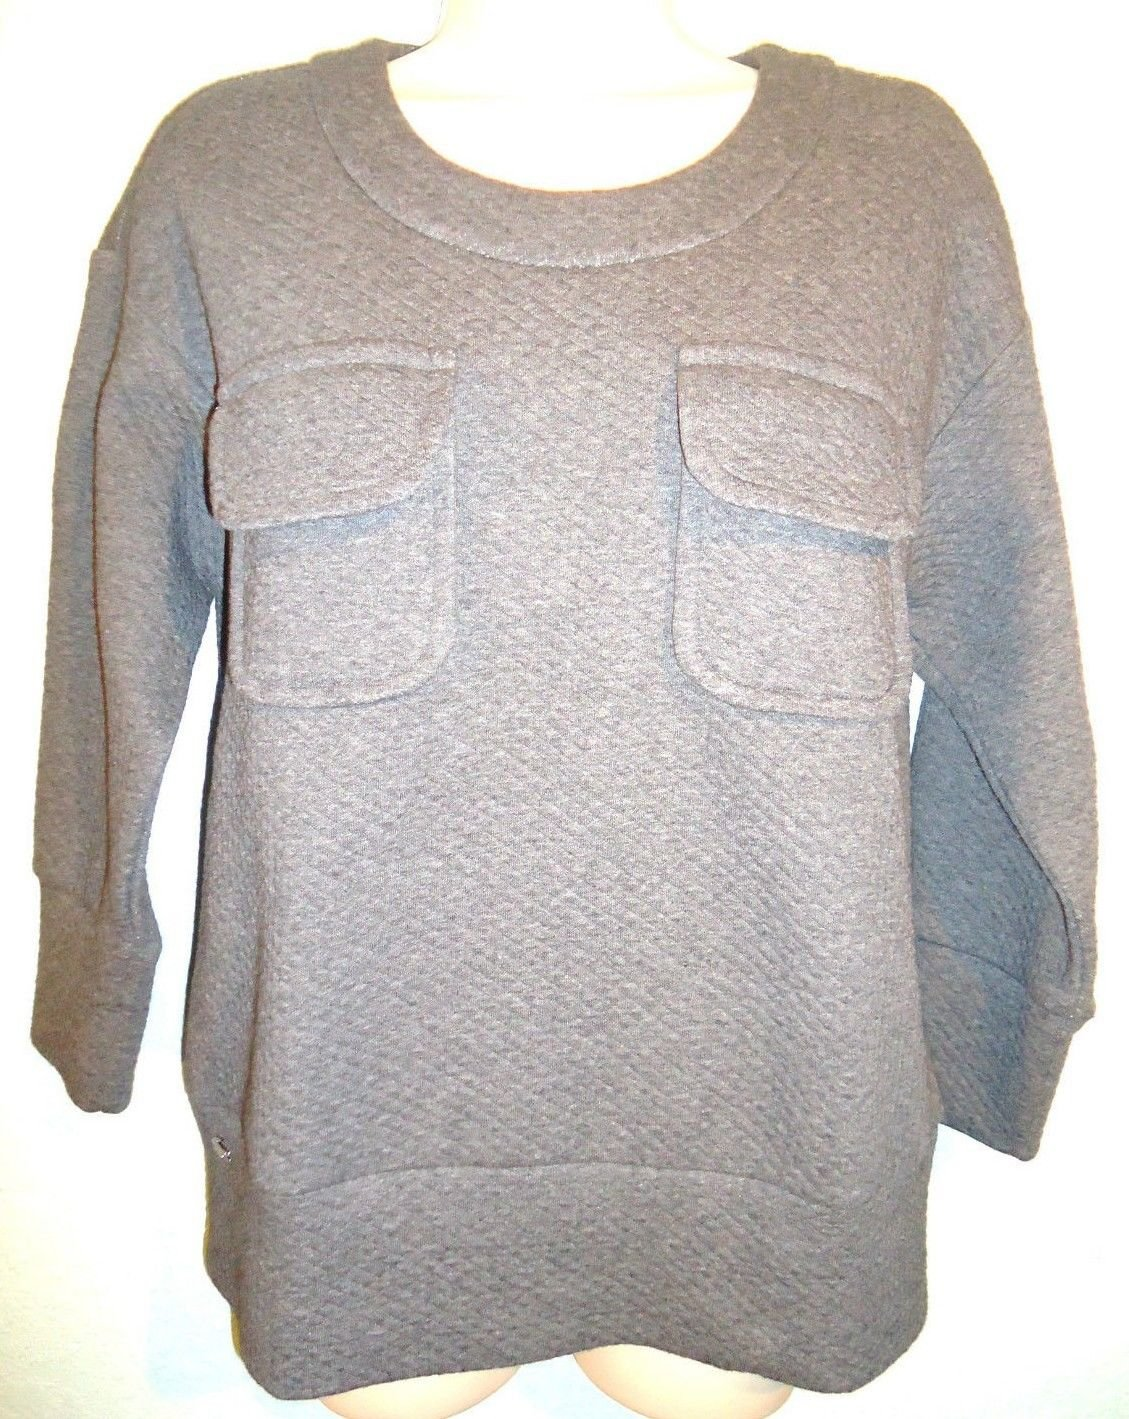 LACOSTE - MARCASSIN - HEATHER - GRAY - SWEATER - BLOUSE - SIZE 6 - TOP - NEW